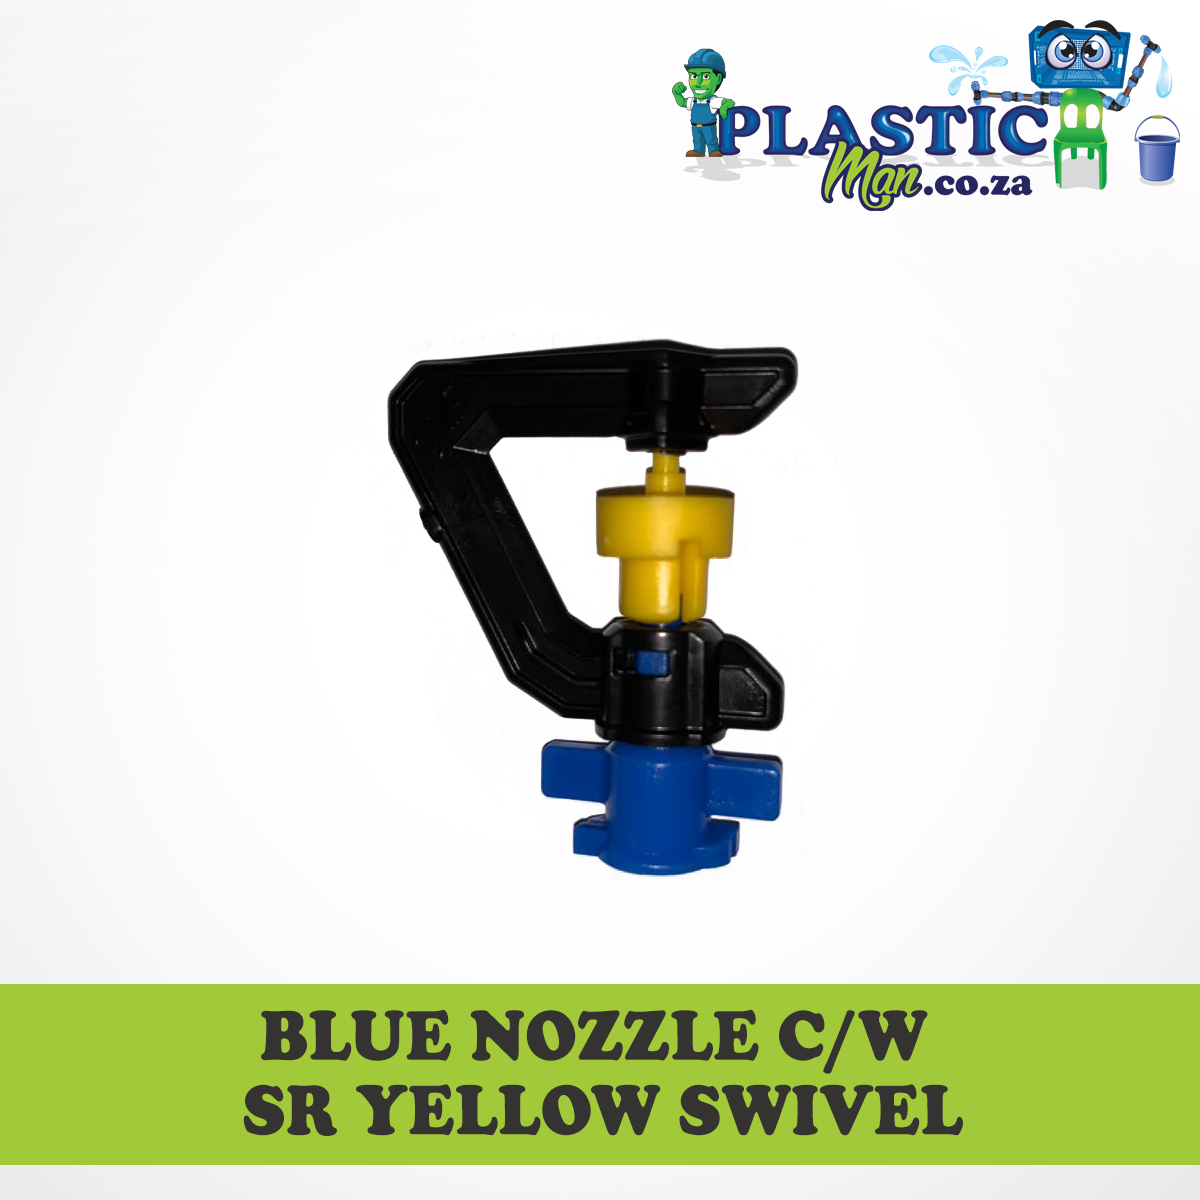 Blue Nozzel c/w sr yellow Swivel